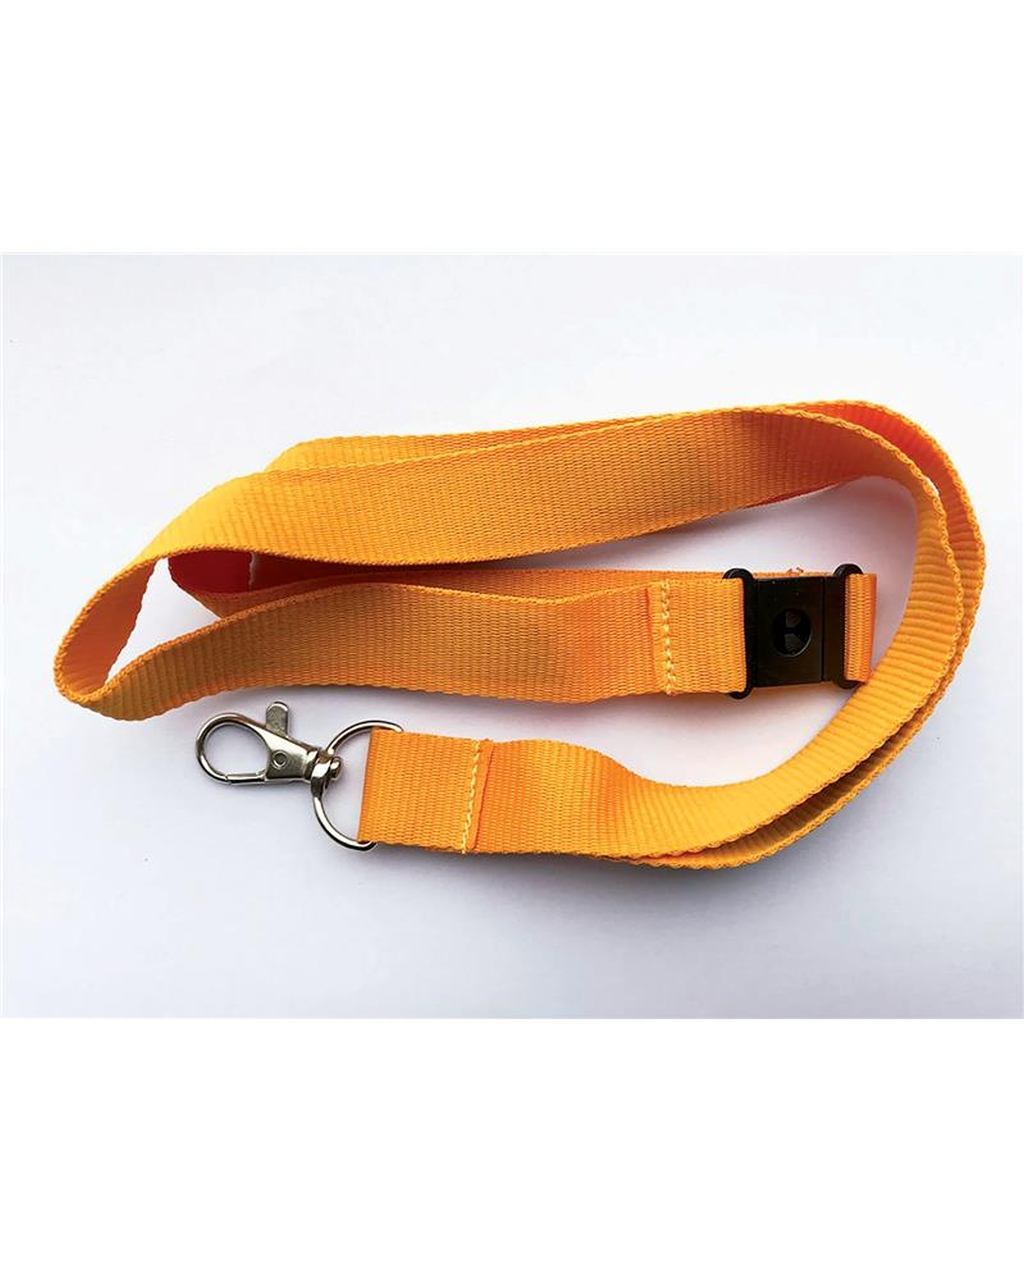 20Mm Lanyards Plain Orangepack Of 100